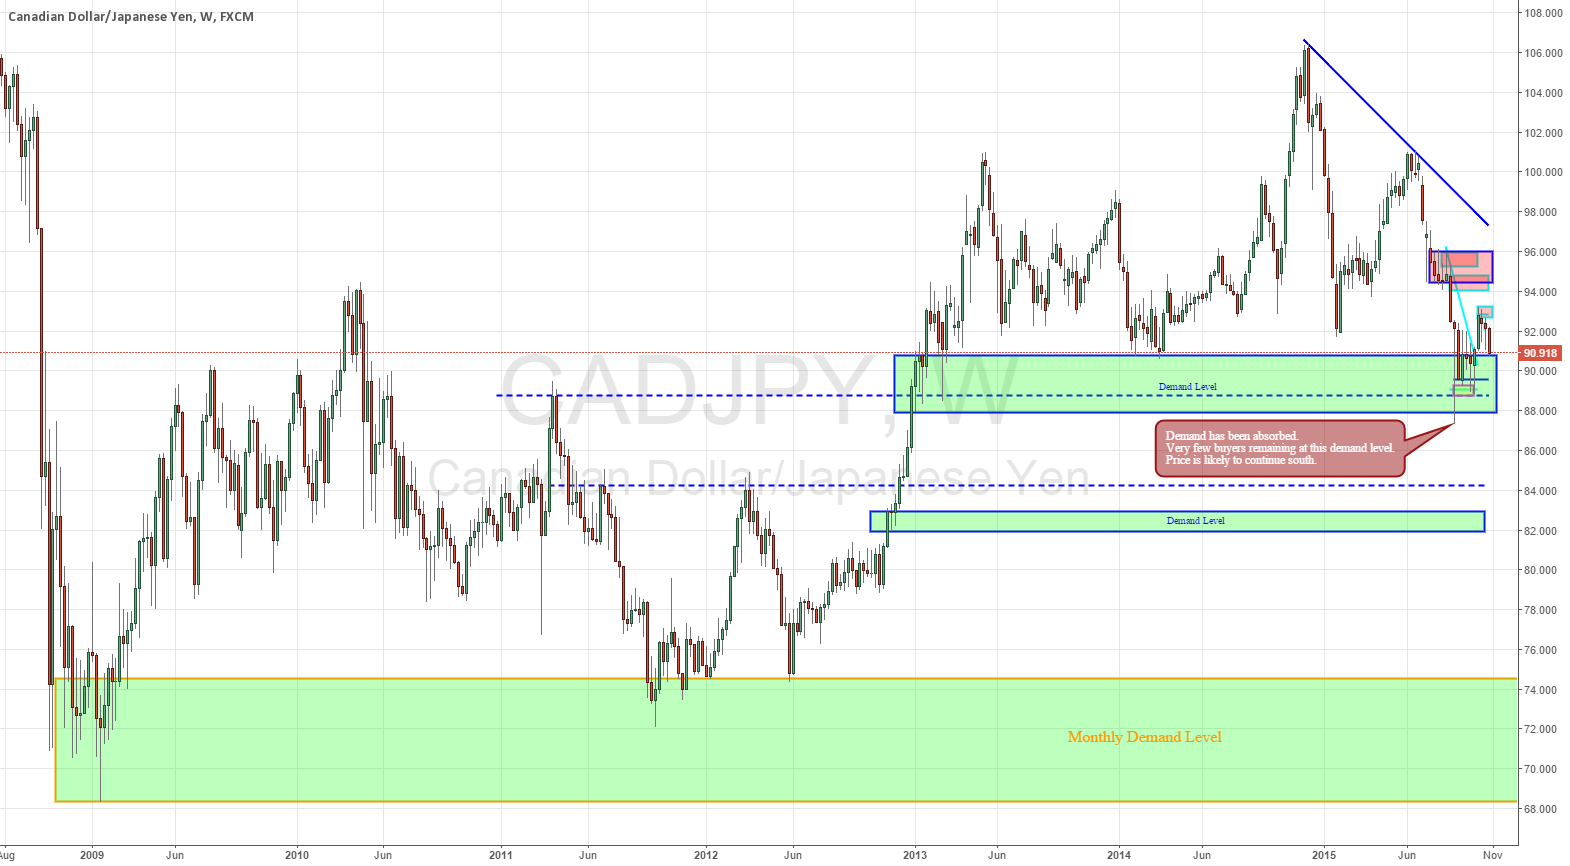 CADJPY going to 83.00 in the long run.